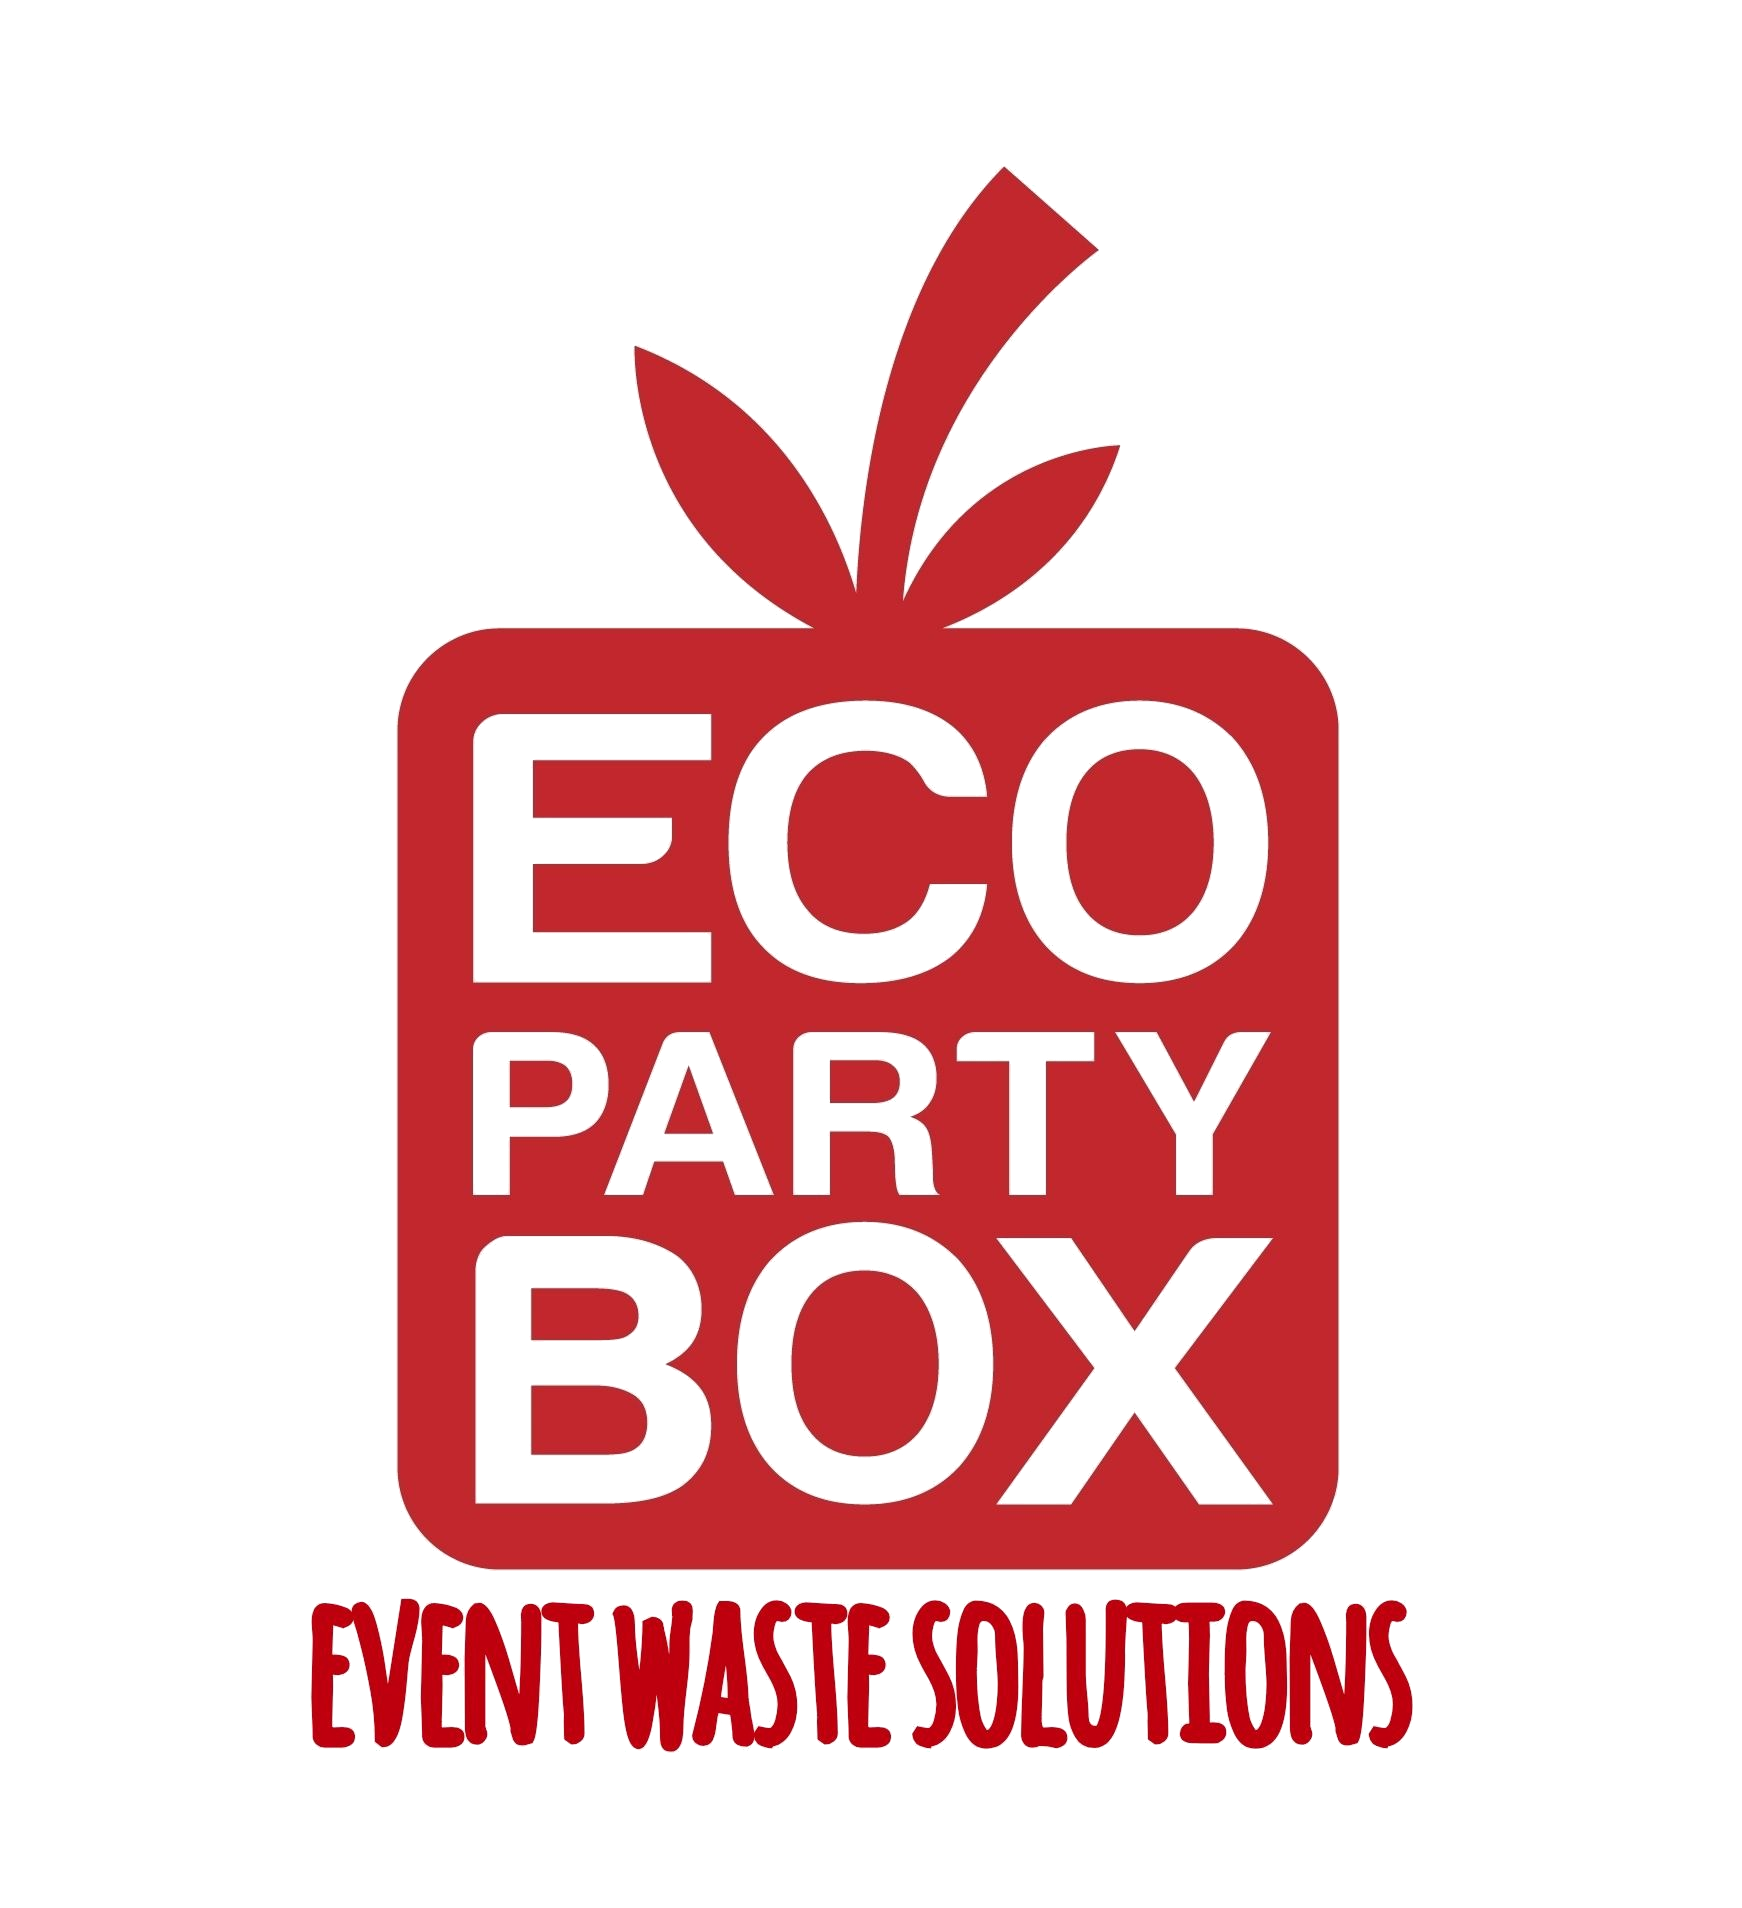 ecopartybox-event-waste-solutions-transparent2.png